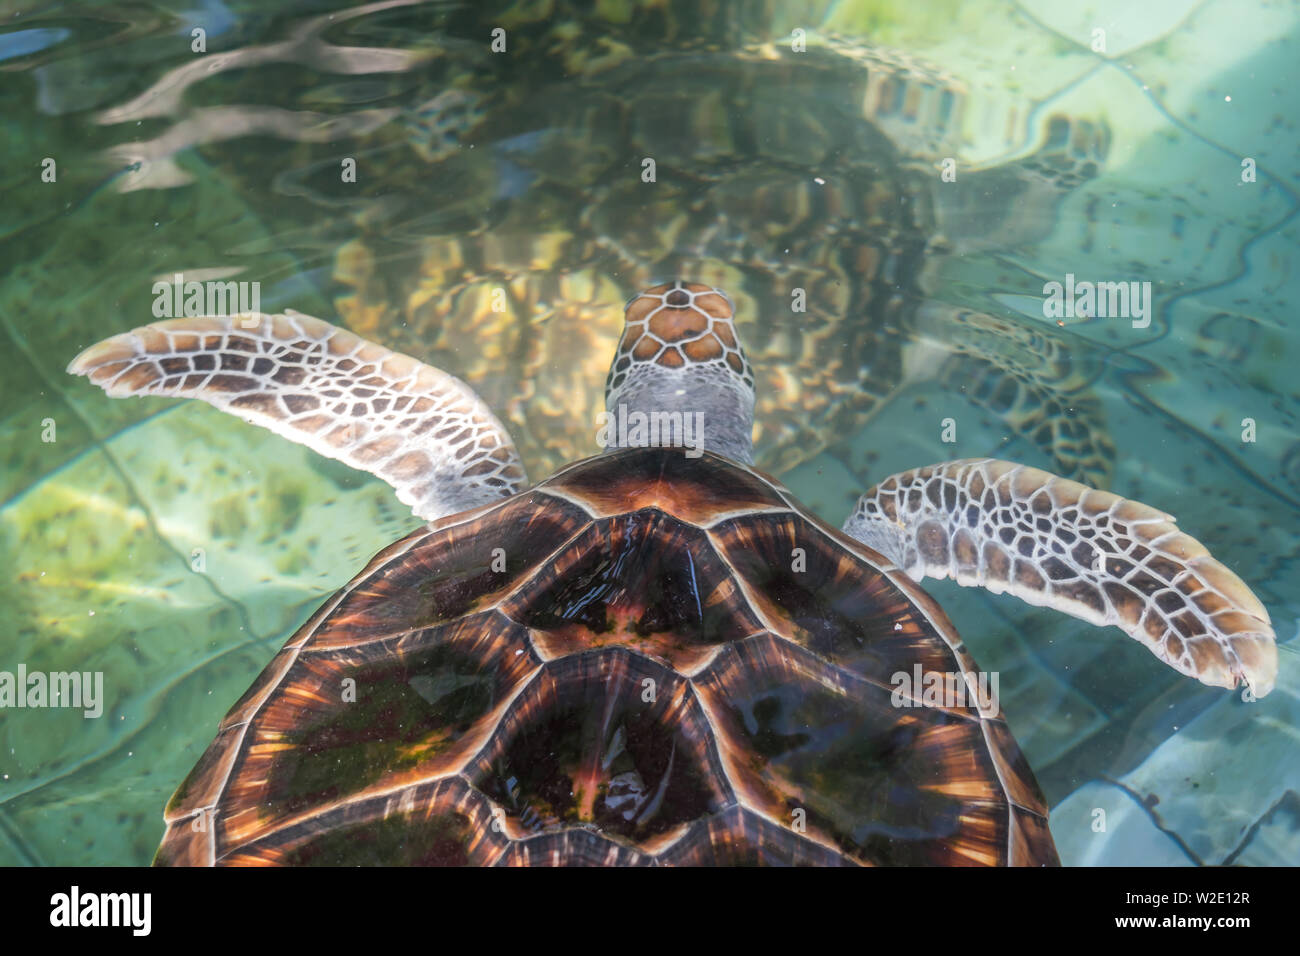 The sea turtle swims in the treatment pool for conservation - Stock Image